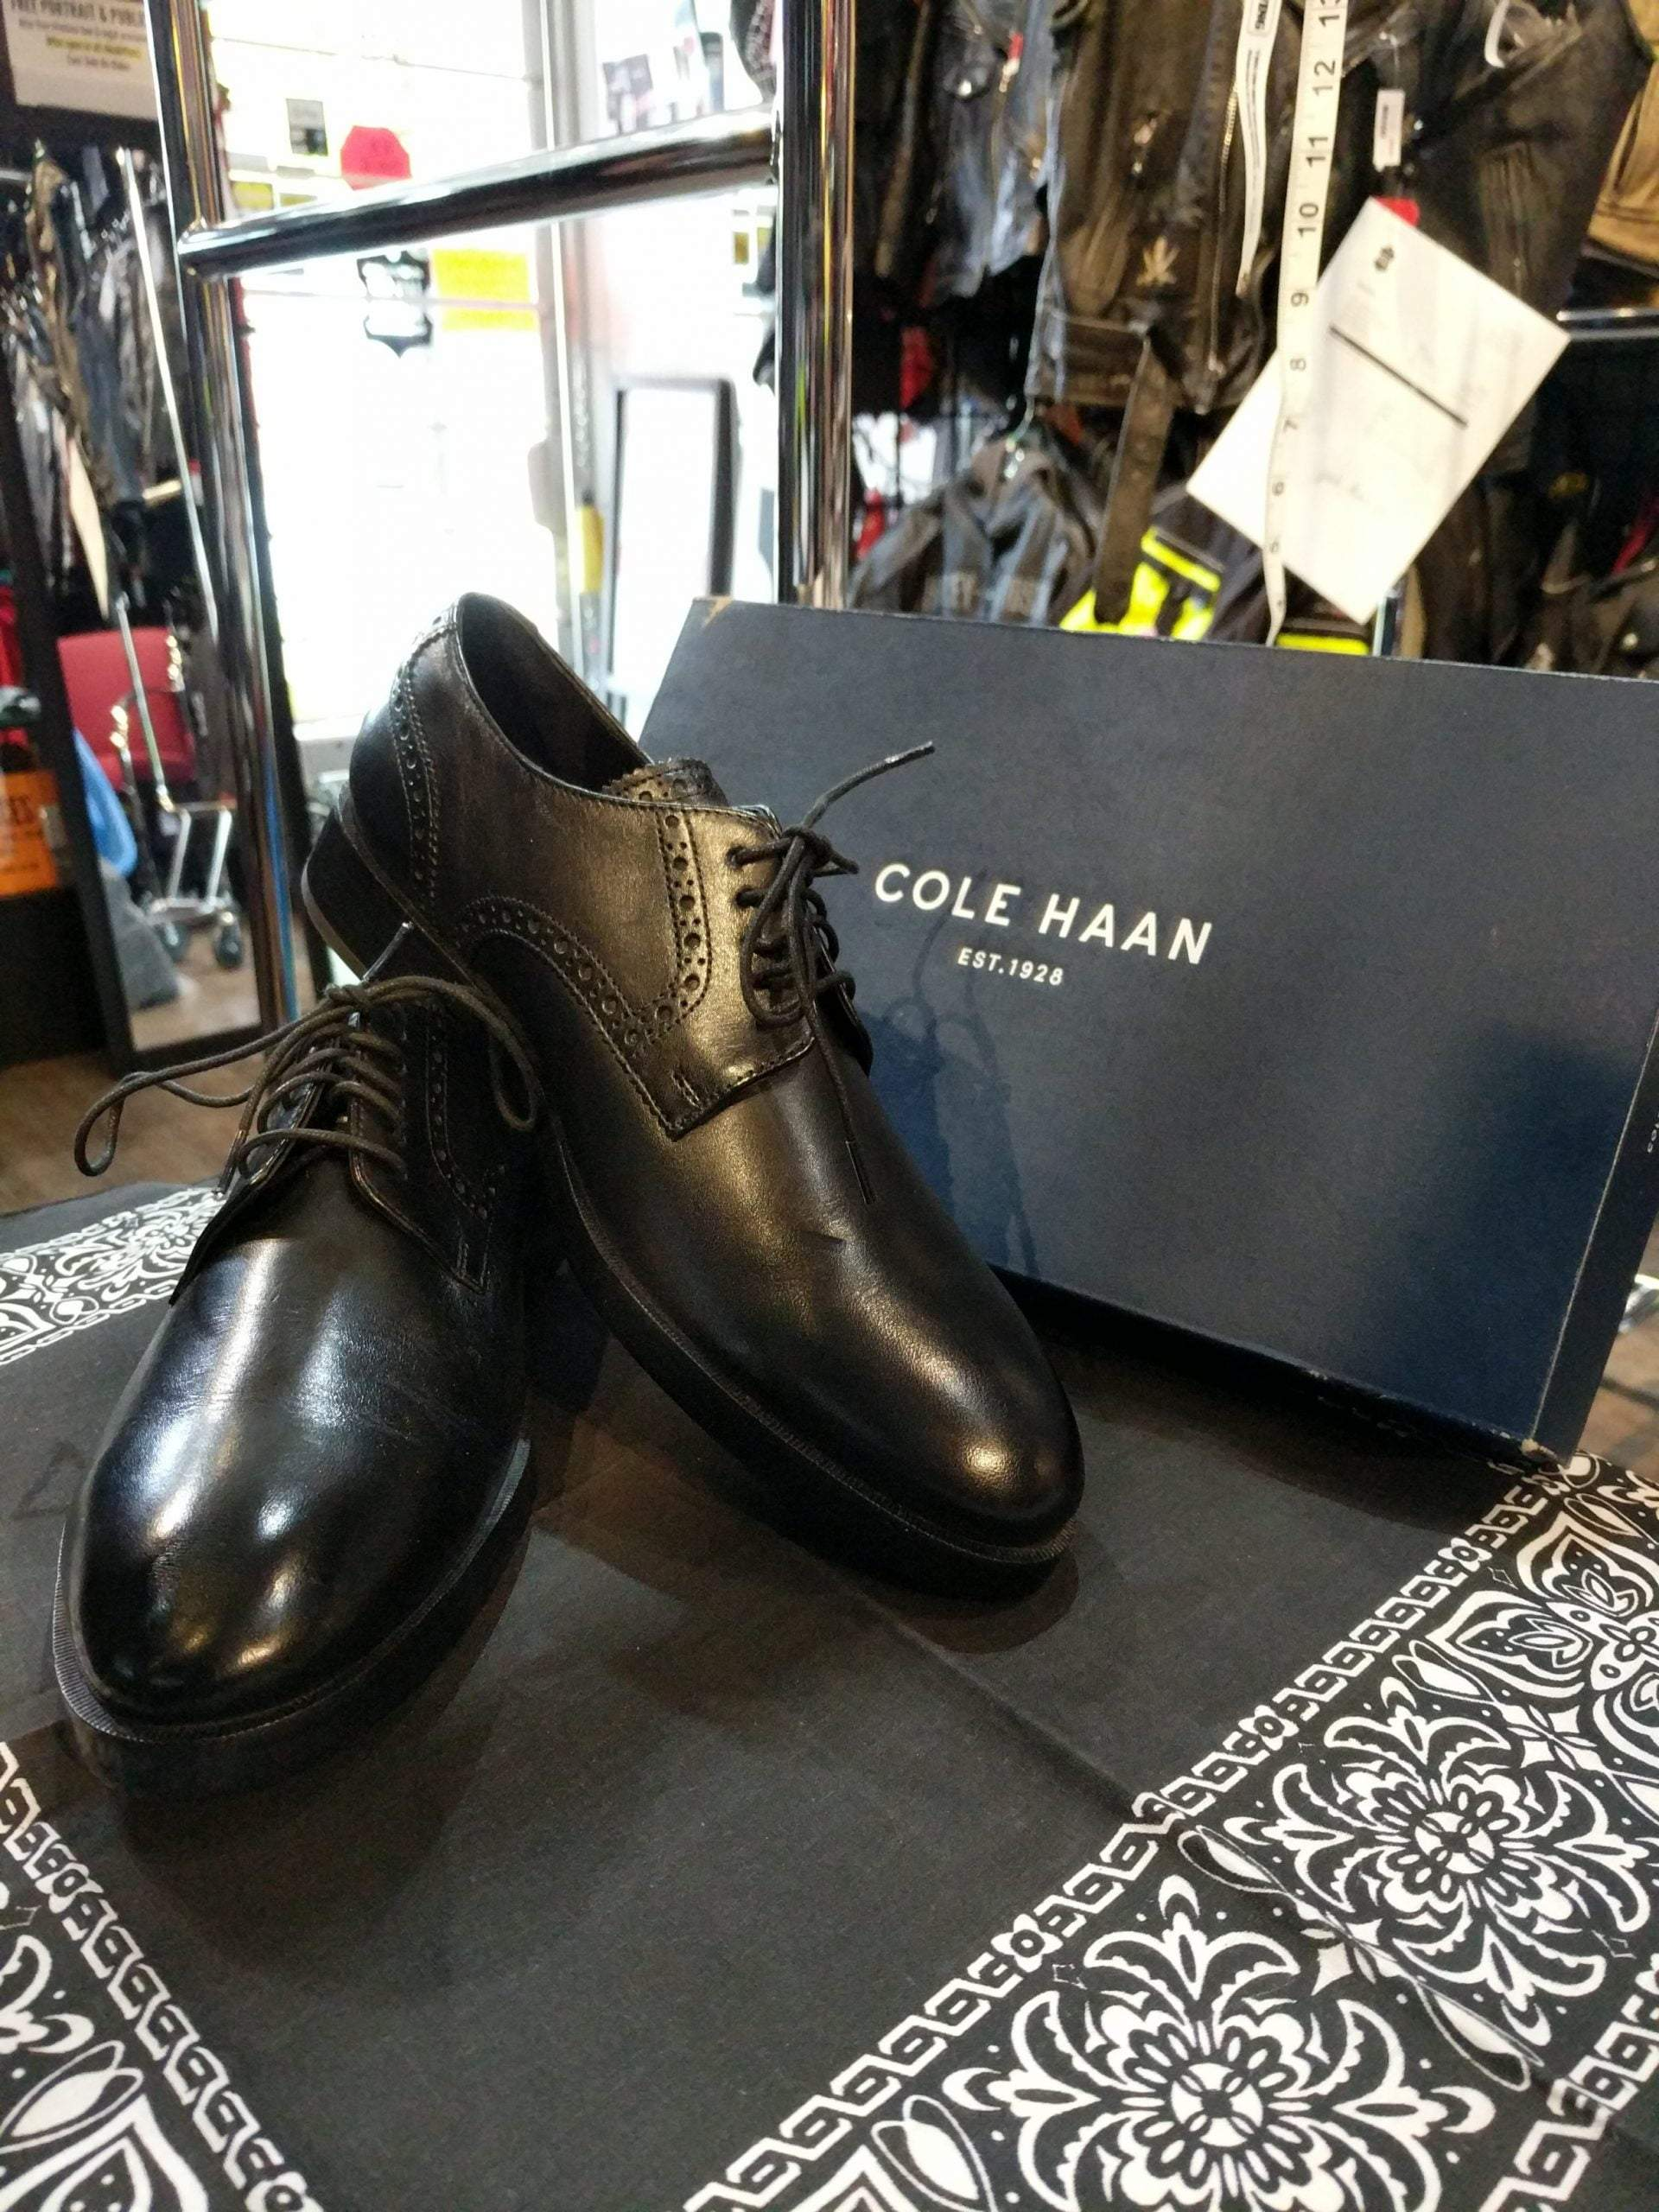 COLE HAAN Leather Henry Grand Derby SHOES     ( Size: Euro 39 | men's 7 | women's 8.5 )